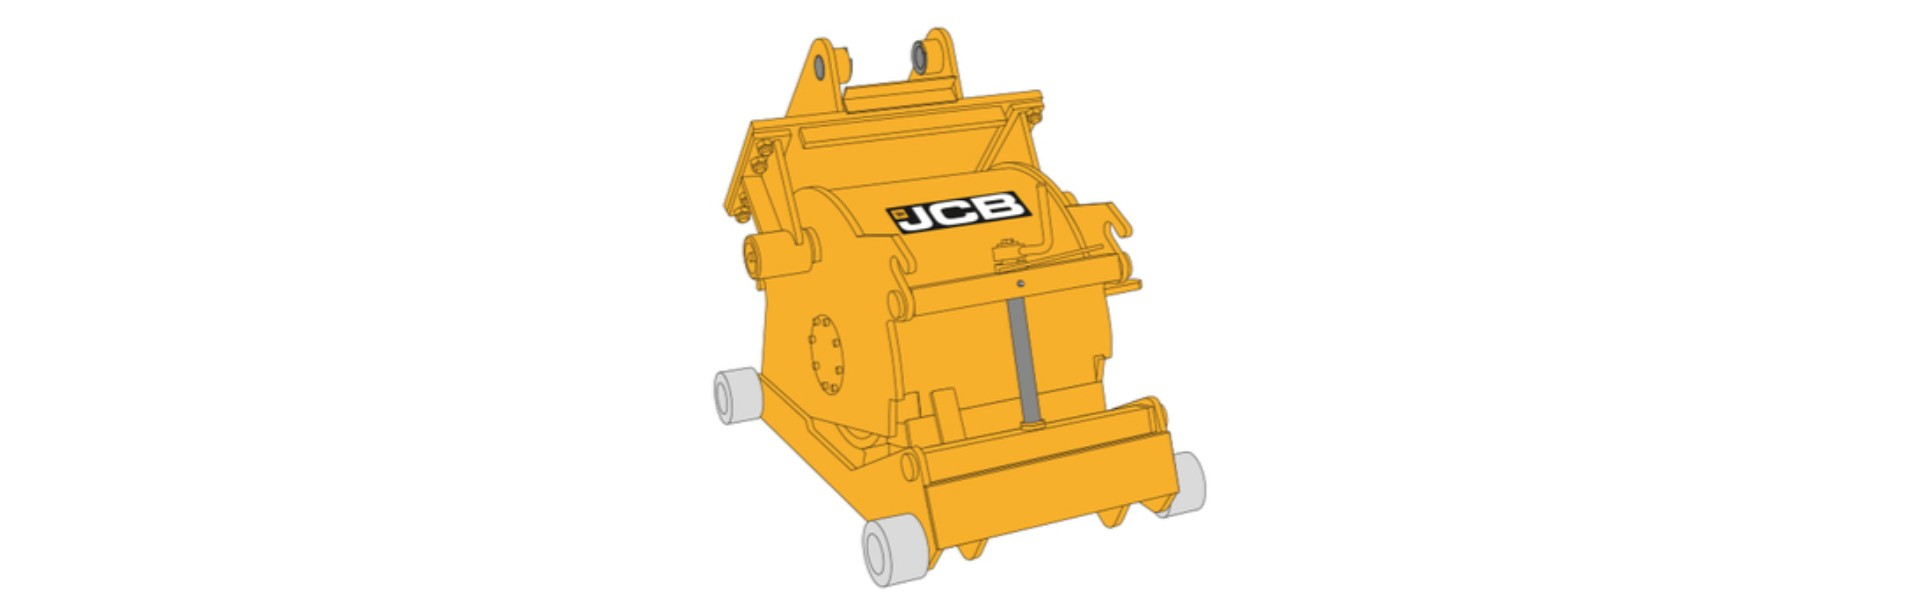 JCB Patch Planer Dubai